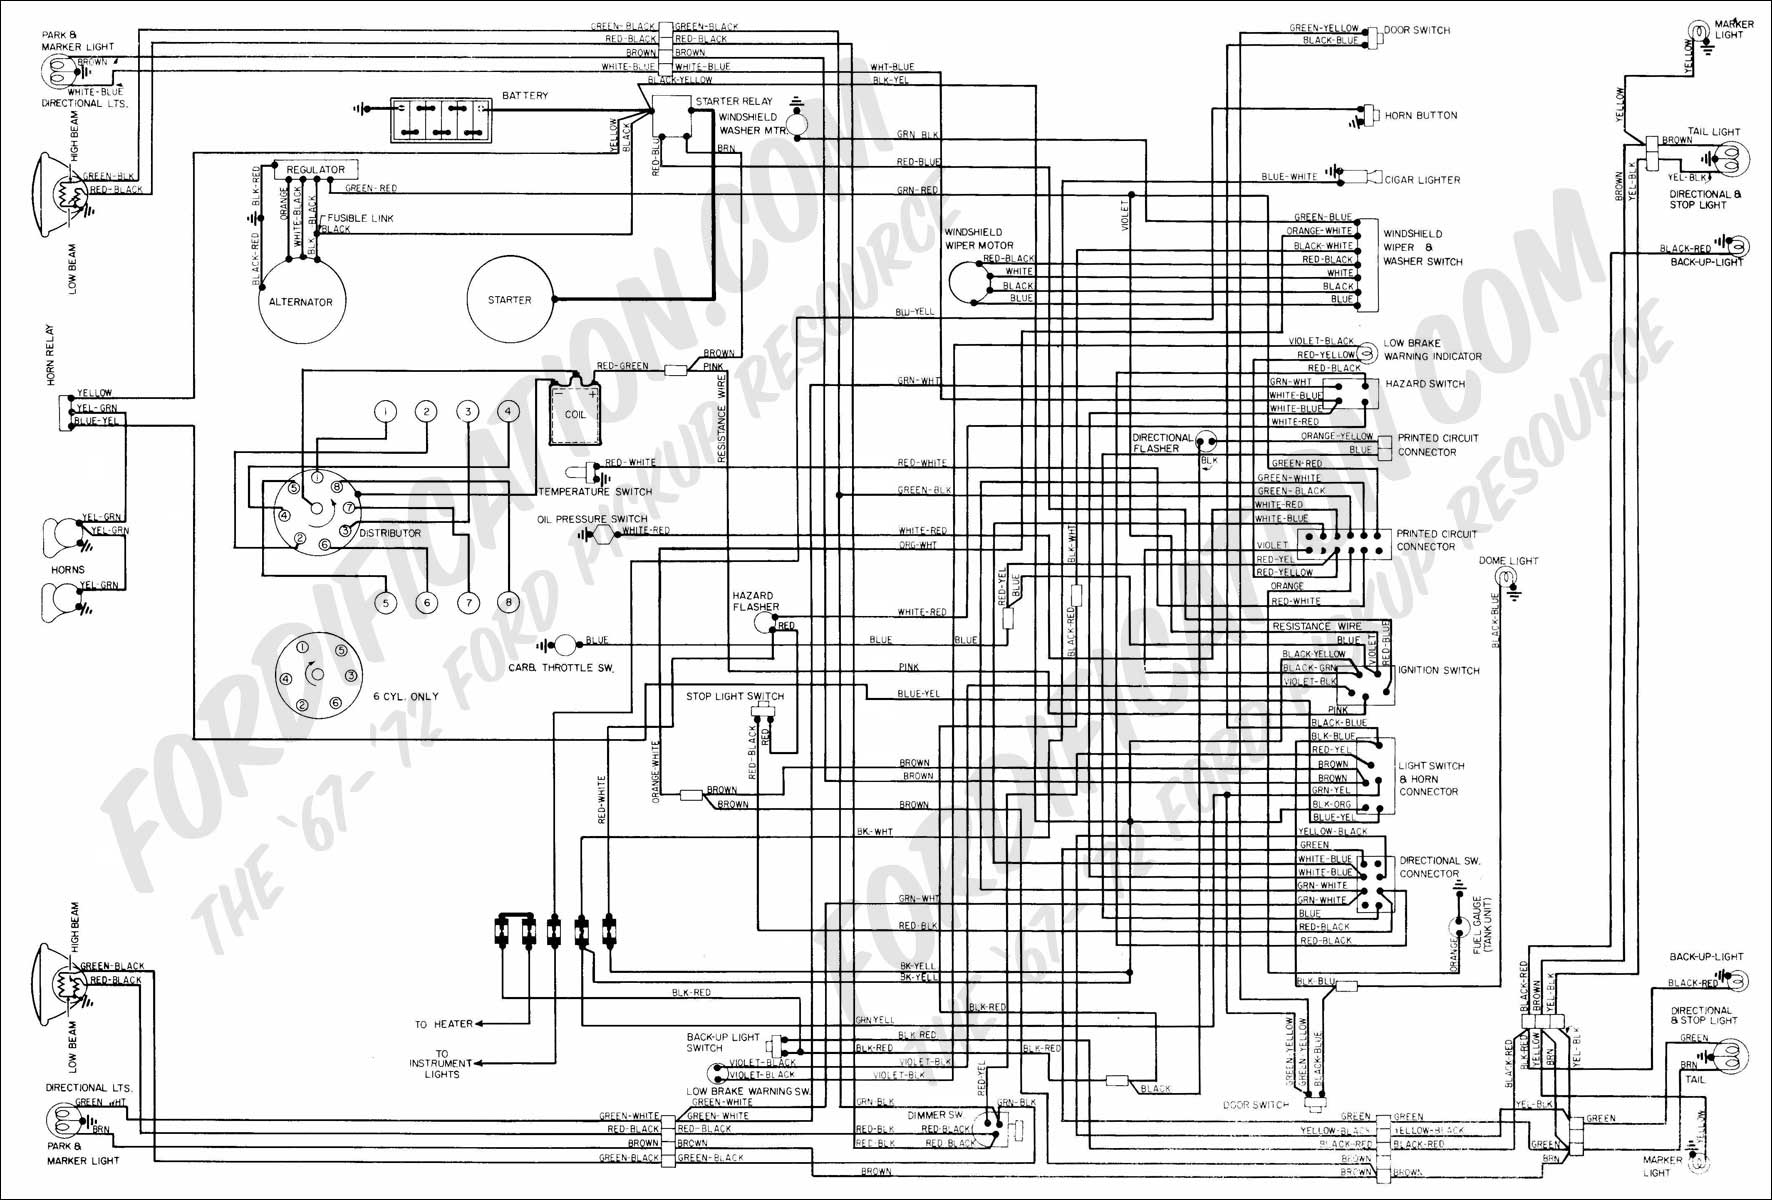 2001 e350 wiring diagram ford f engine diagram ford wiring ford e ignition wiring diagram schematics and wiring 1979 f100 ignition switch wiring diagram positions ford